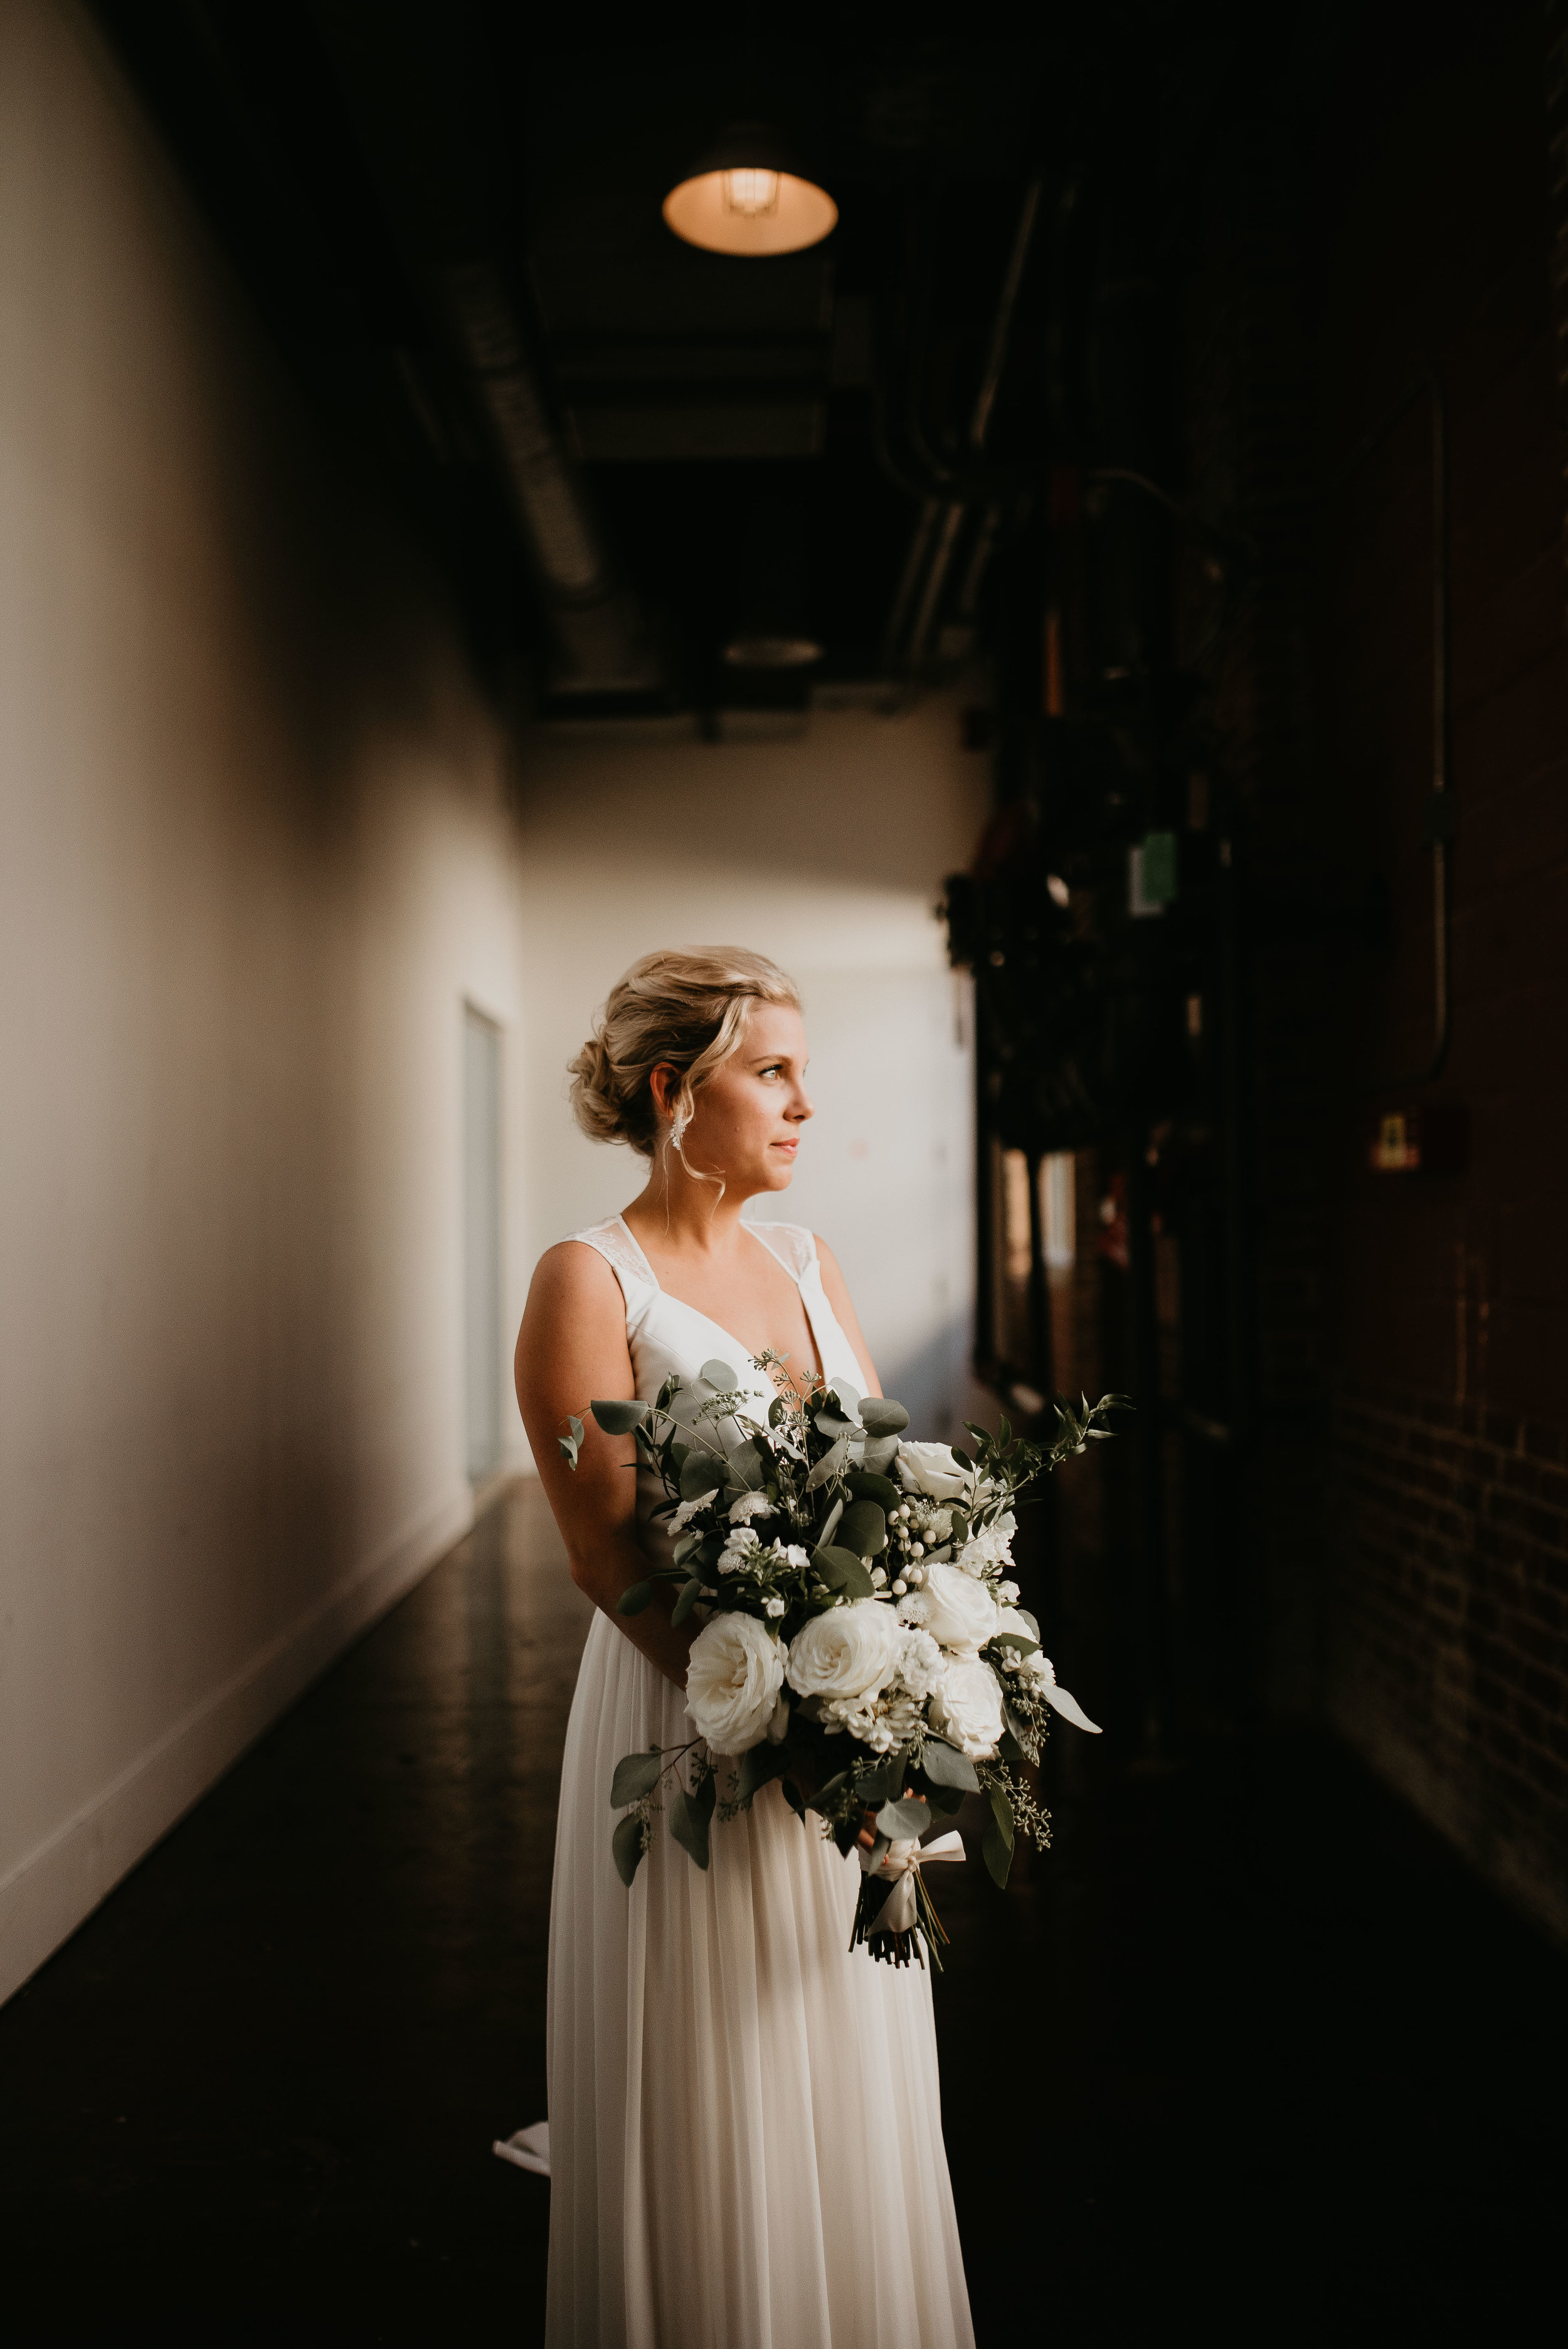 Portrait of bride with eucalyptus bouquet at The Foundry at Puritan Mill in Atlanta